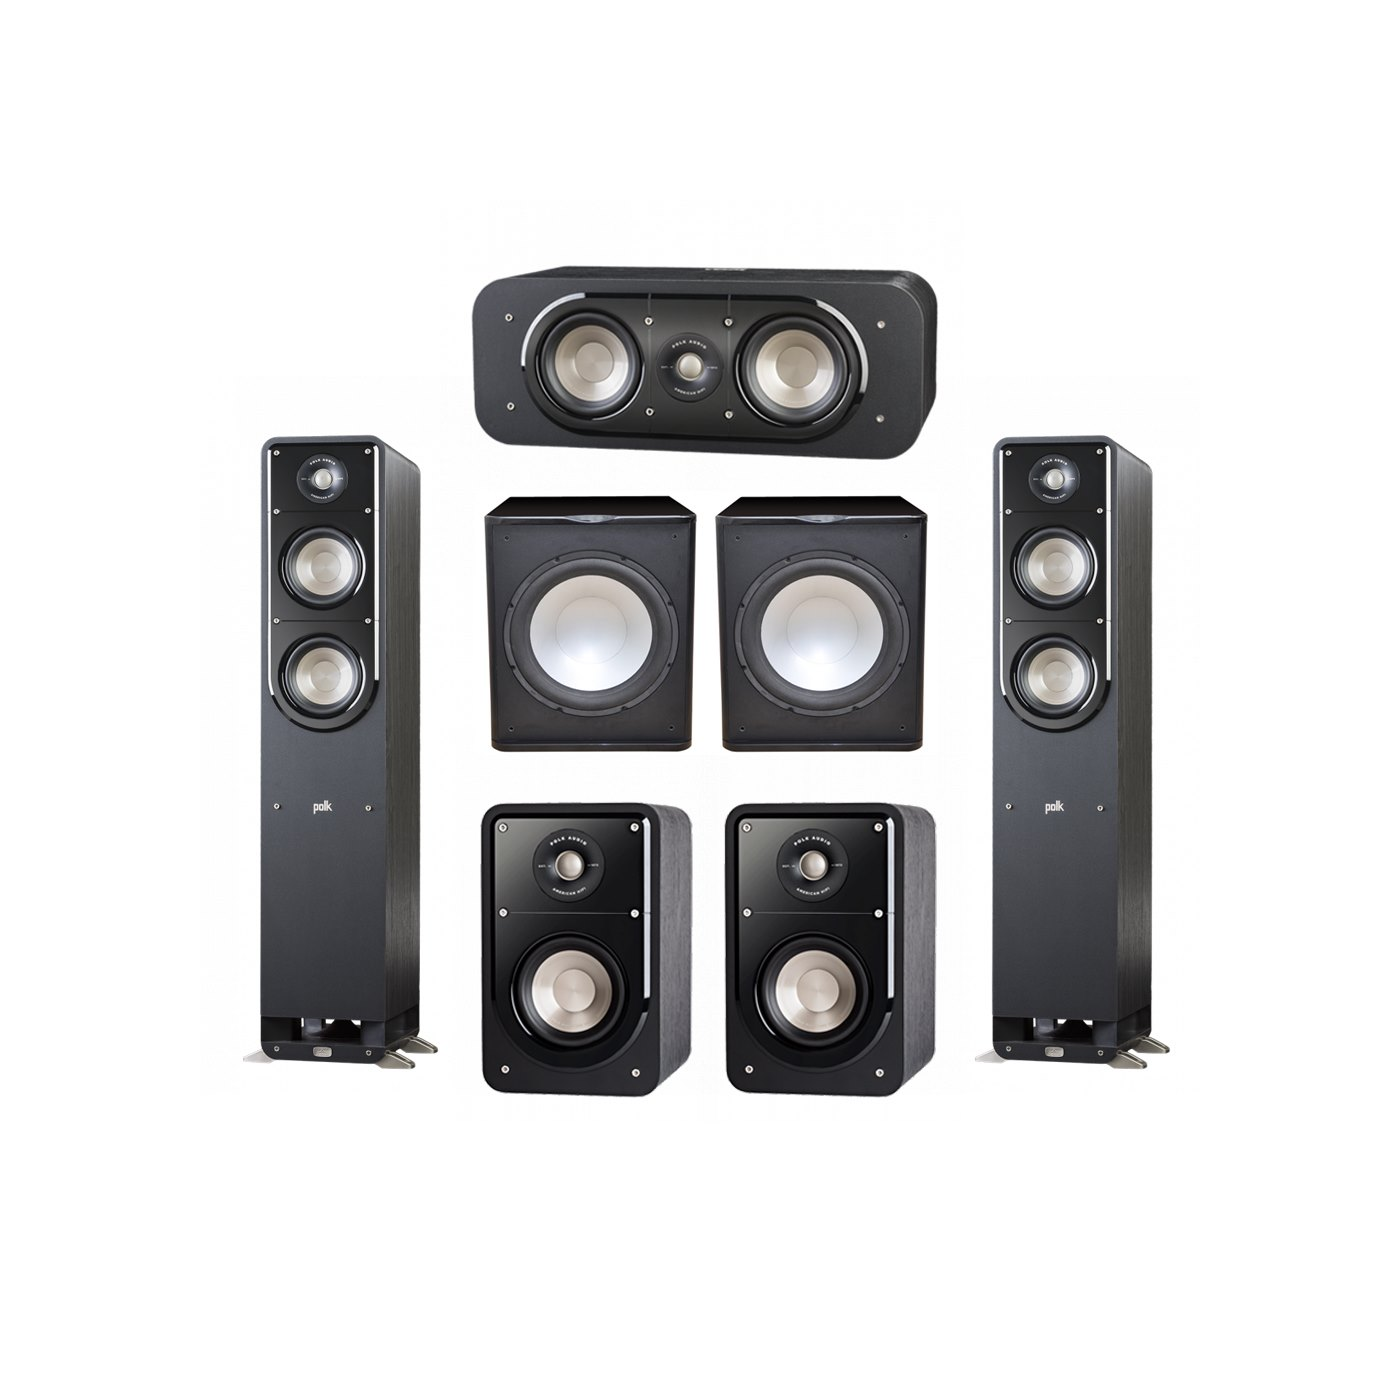 Polk Audio Signature 5.2 System with 2 S50 Tower Speaker, 1 Polk S30 Center Speaker, 2 Polk S15 Bookshelf Speaker, 2 Premier Acoustic PA-150 Powered Subwoofer